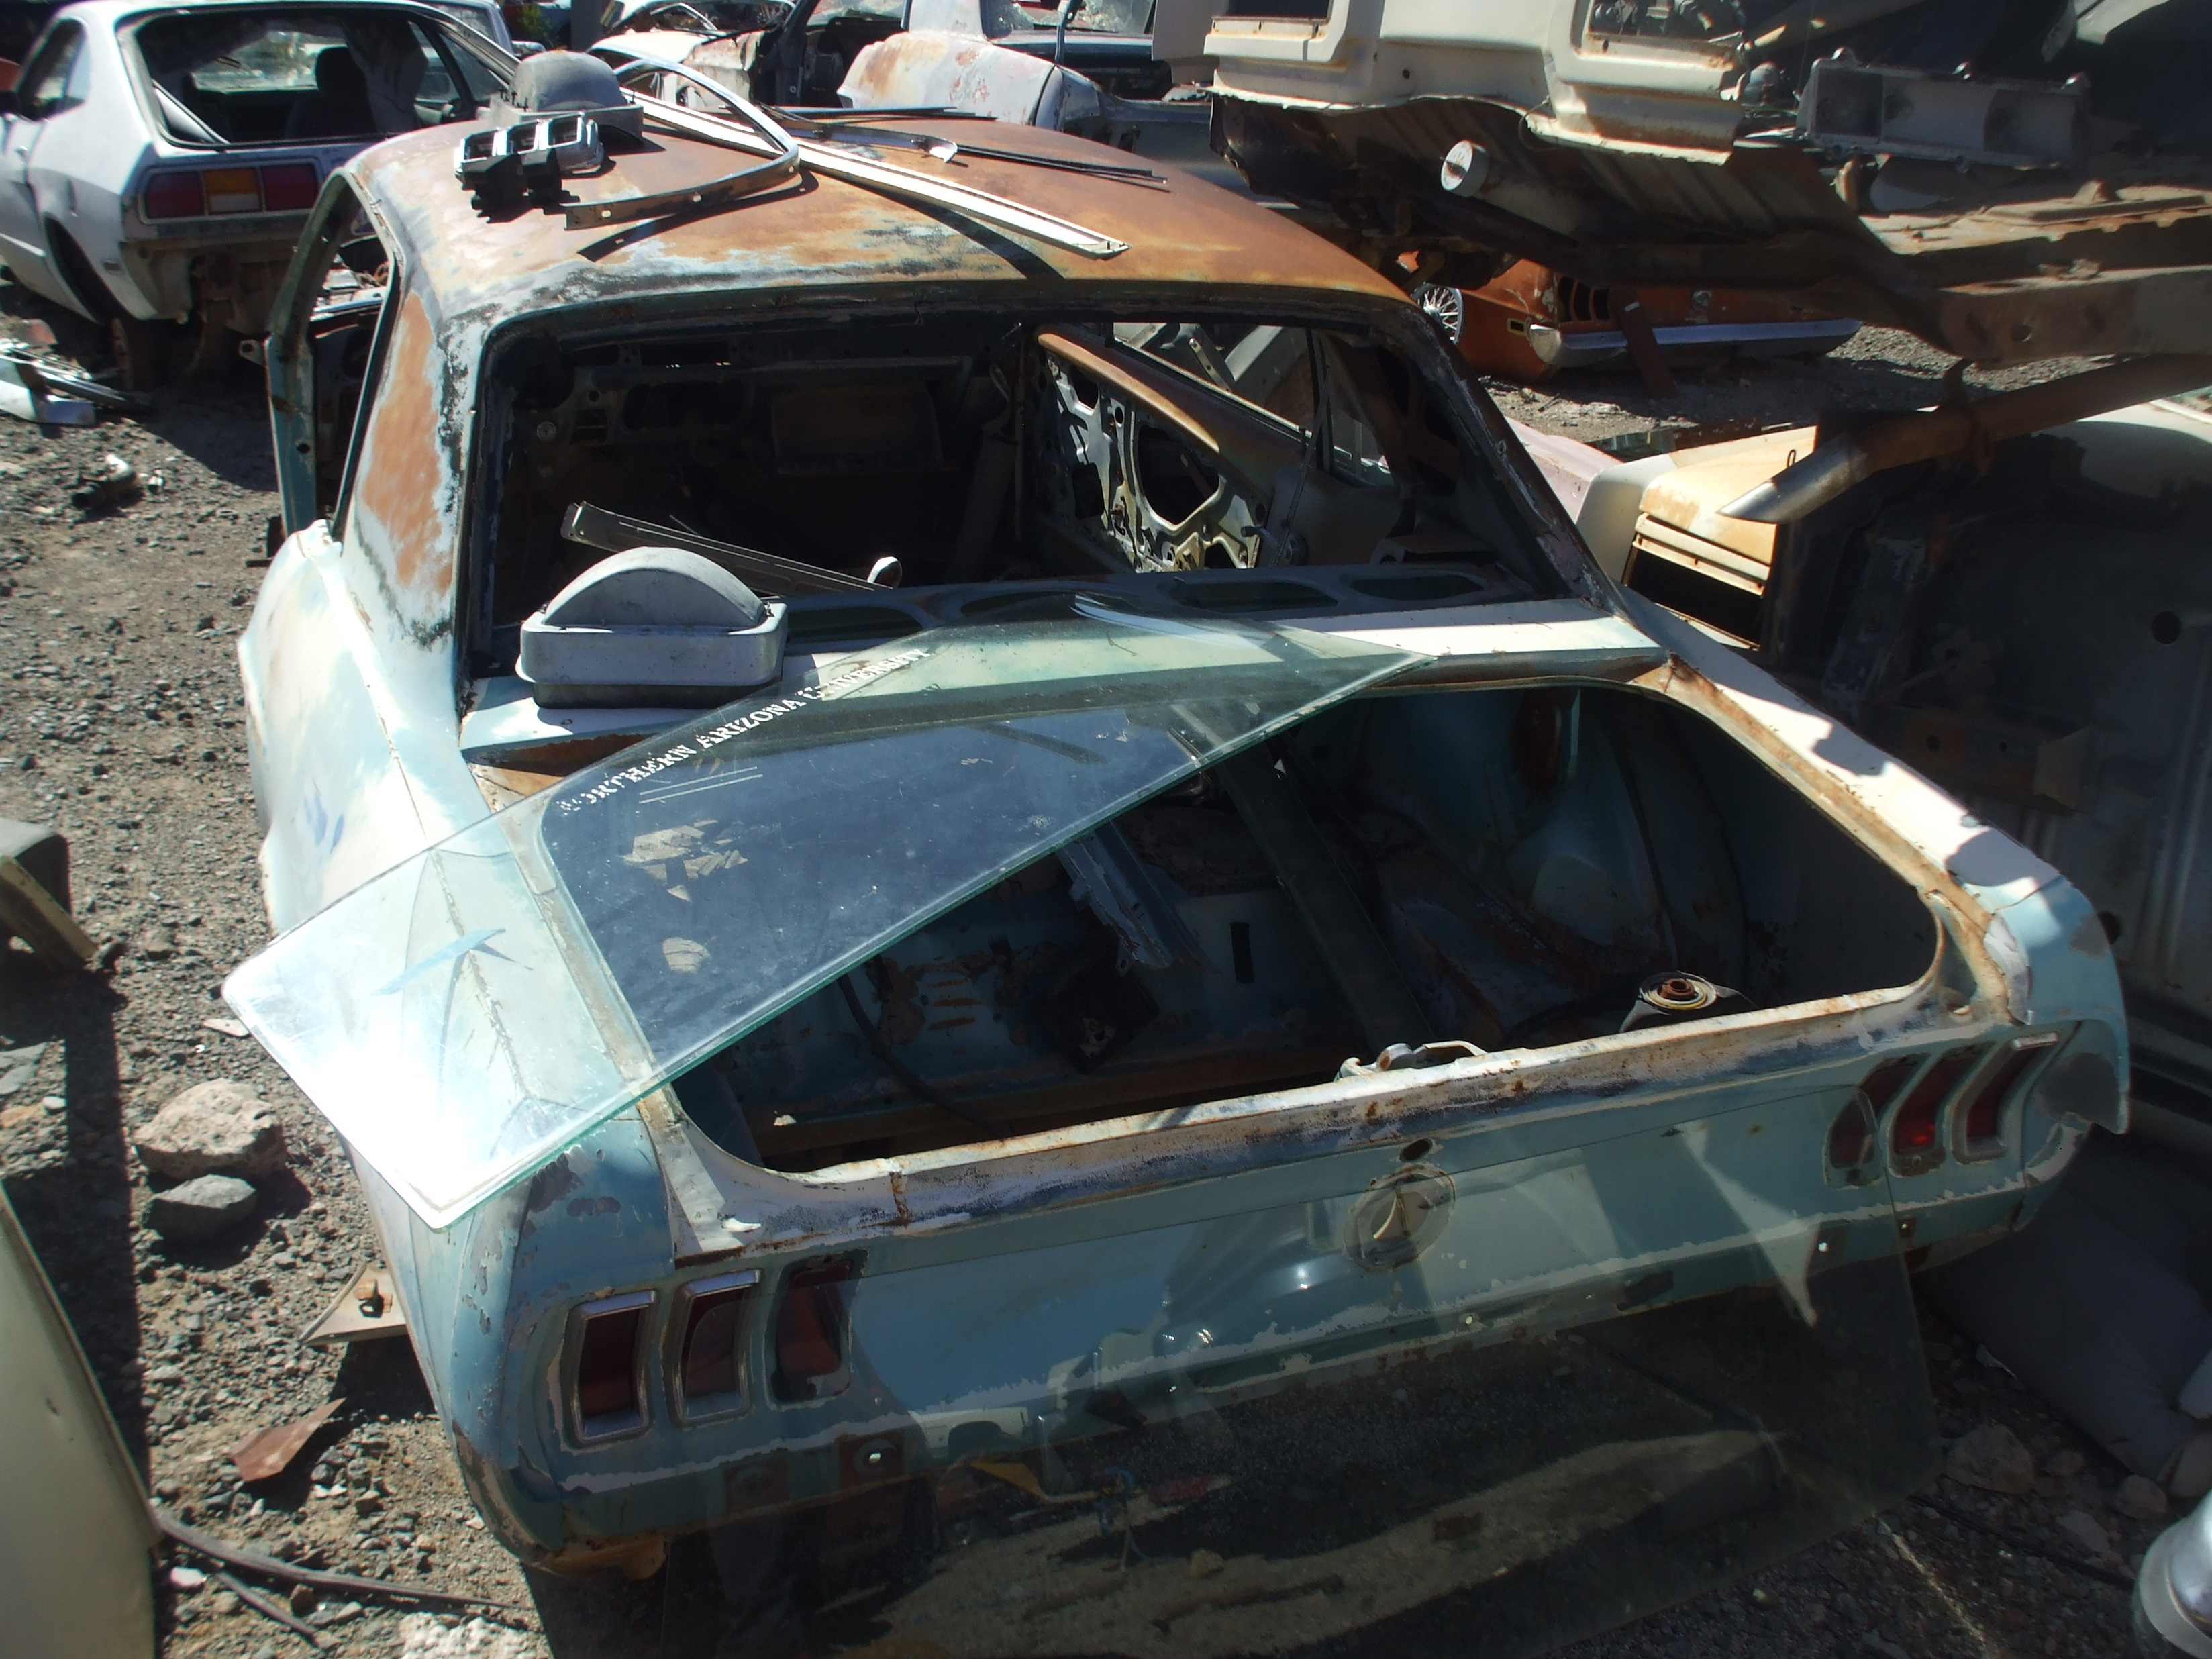 Junkyard Cars For Sale >> 1967 Ford Mustang (#67FO2527D) | Desert Valley Auto Parts